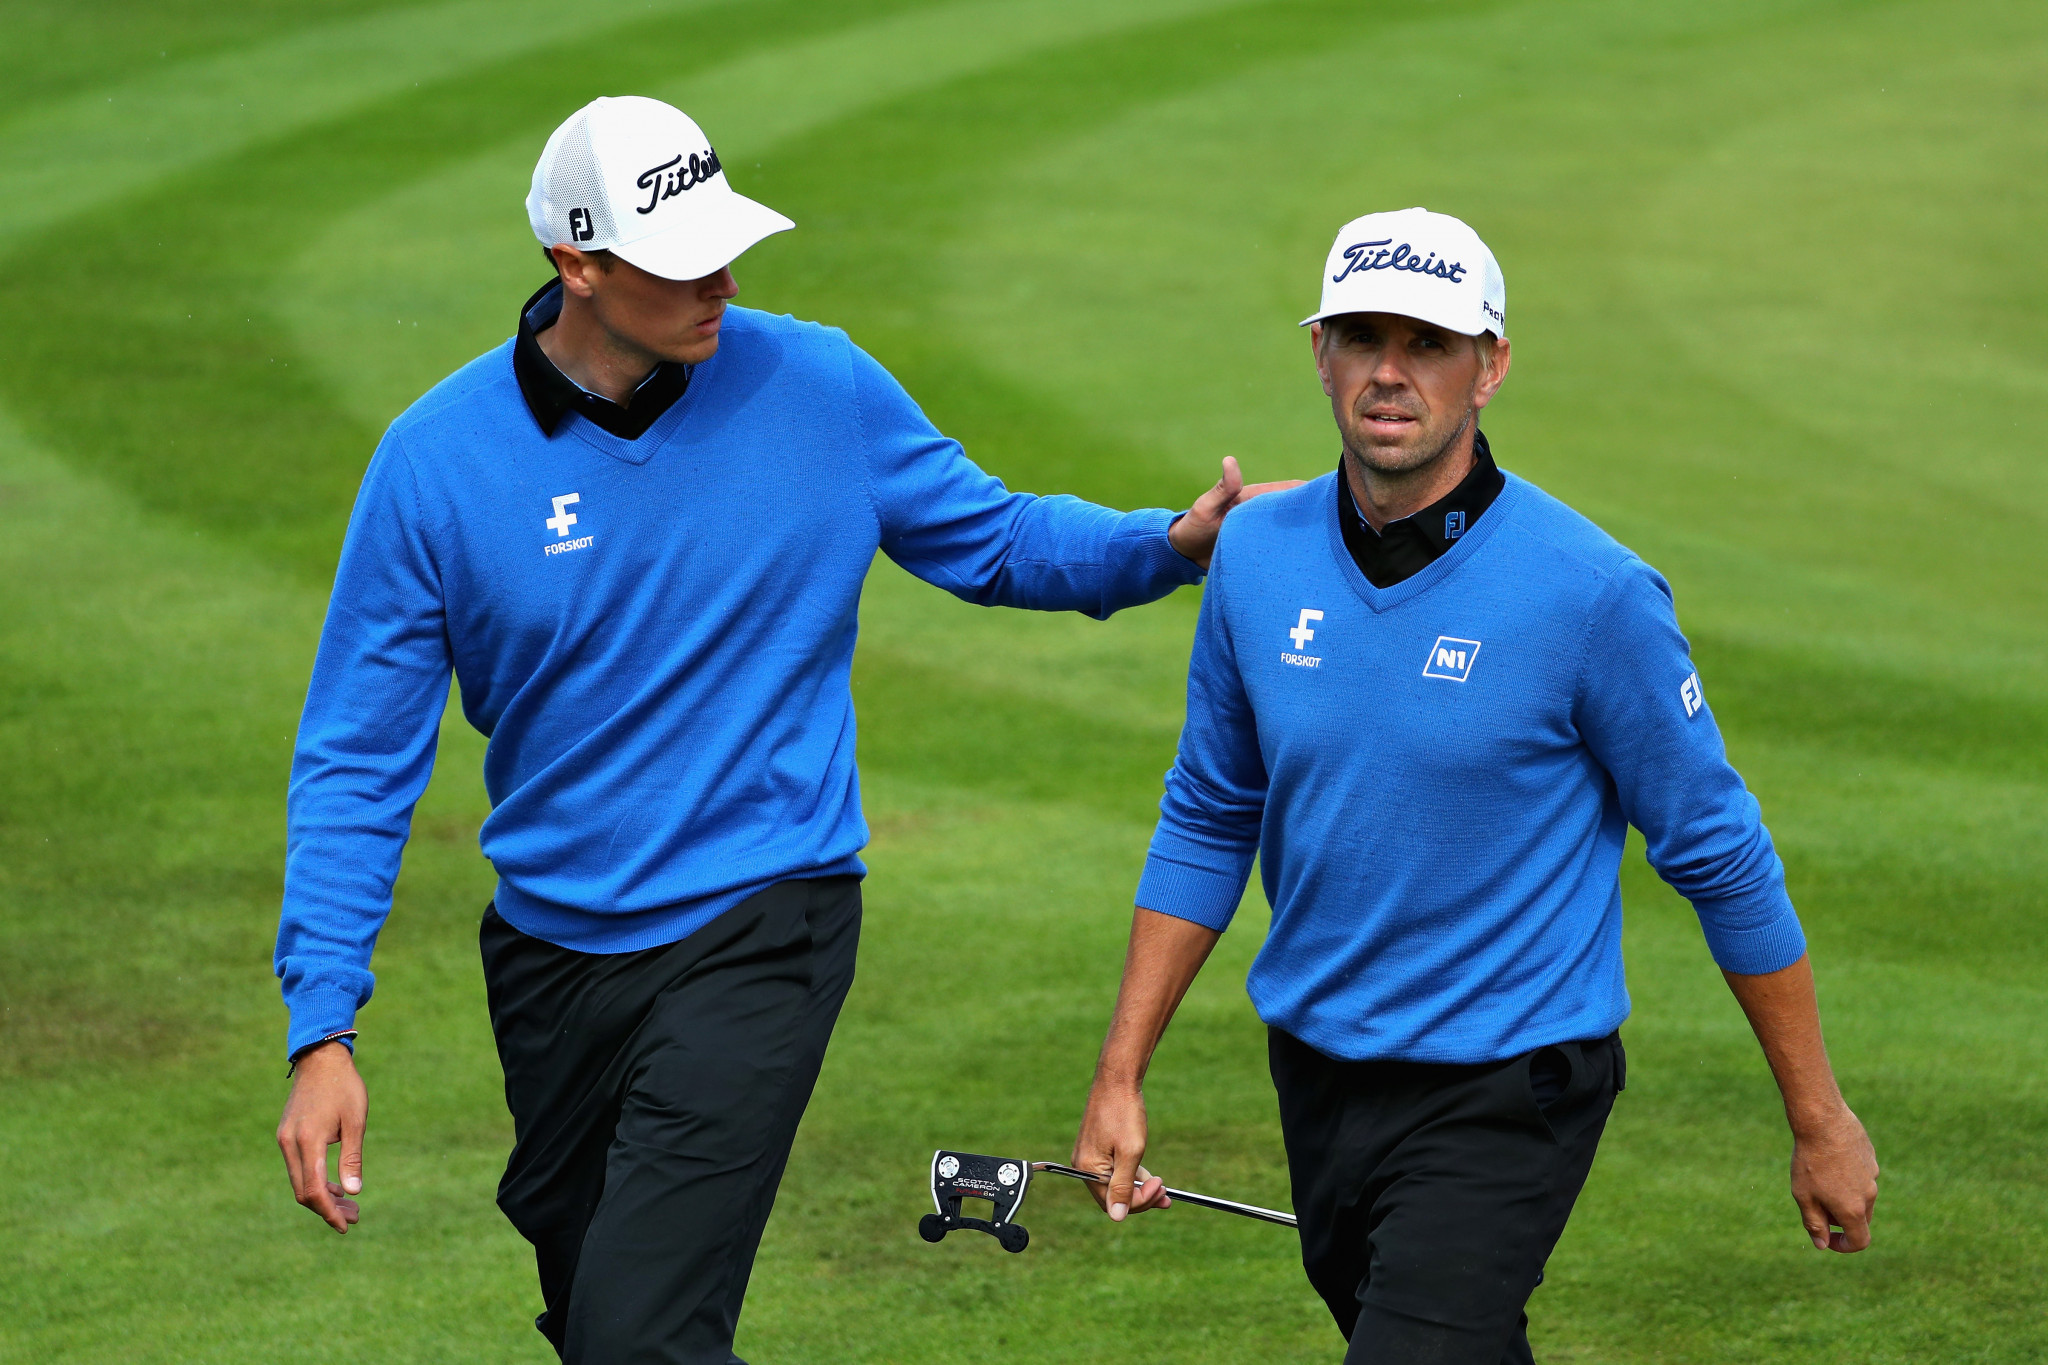 Birgir Hafthorsson and Axel Boasson earned a semi-final spot at the European Golf Team Championships at Gleneagles ©Getty Images